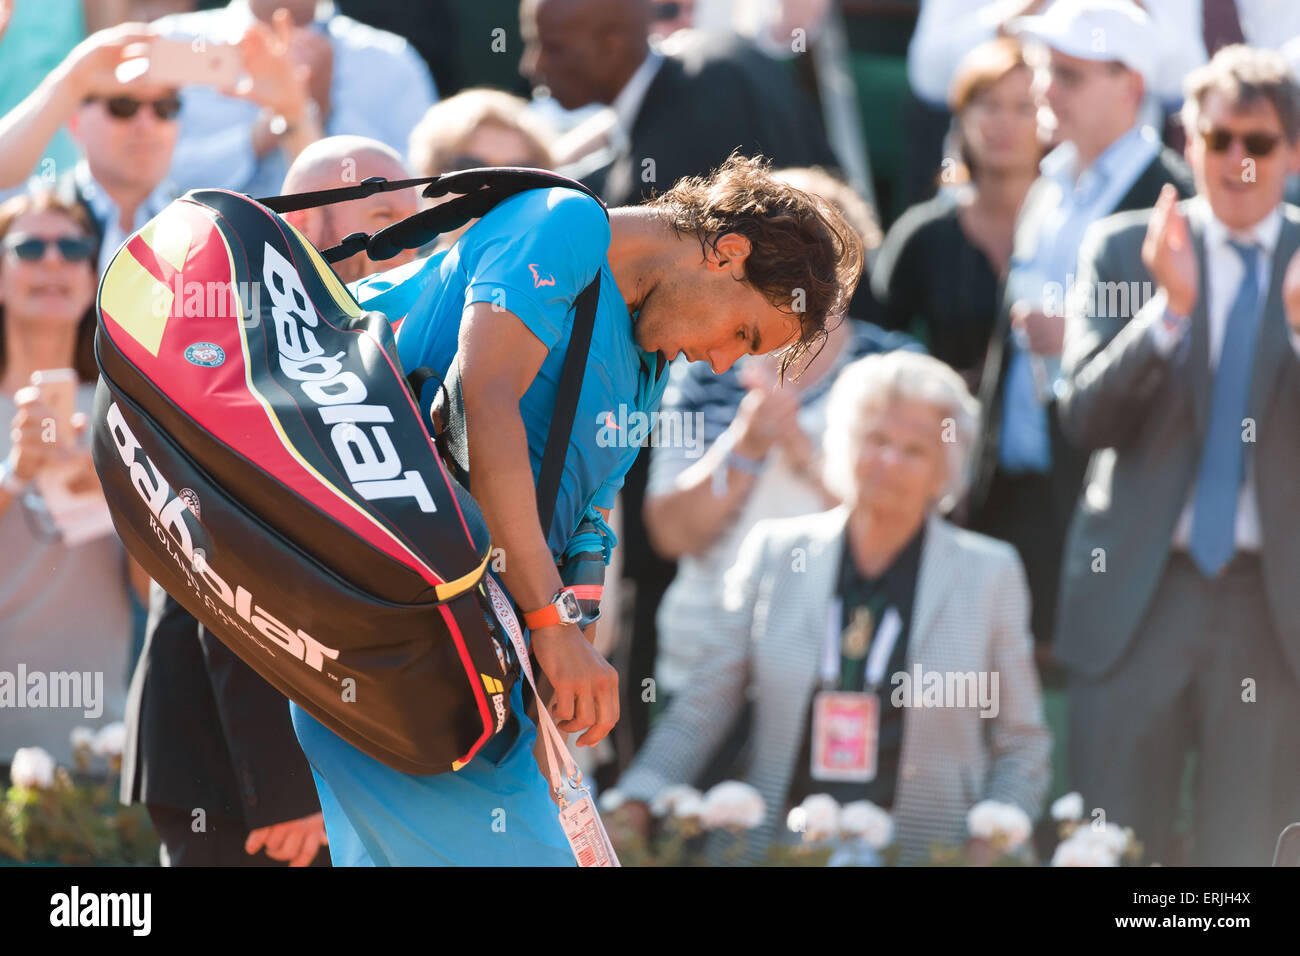 Paris, France. 3rd June, 2015. Rafael Nadal of Spain leaves the court after losing a Quarterfinal match against - Stock Image